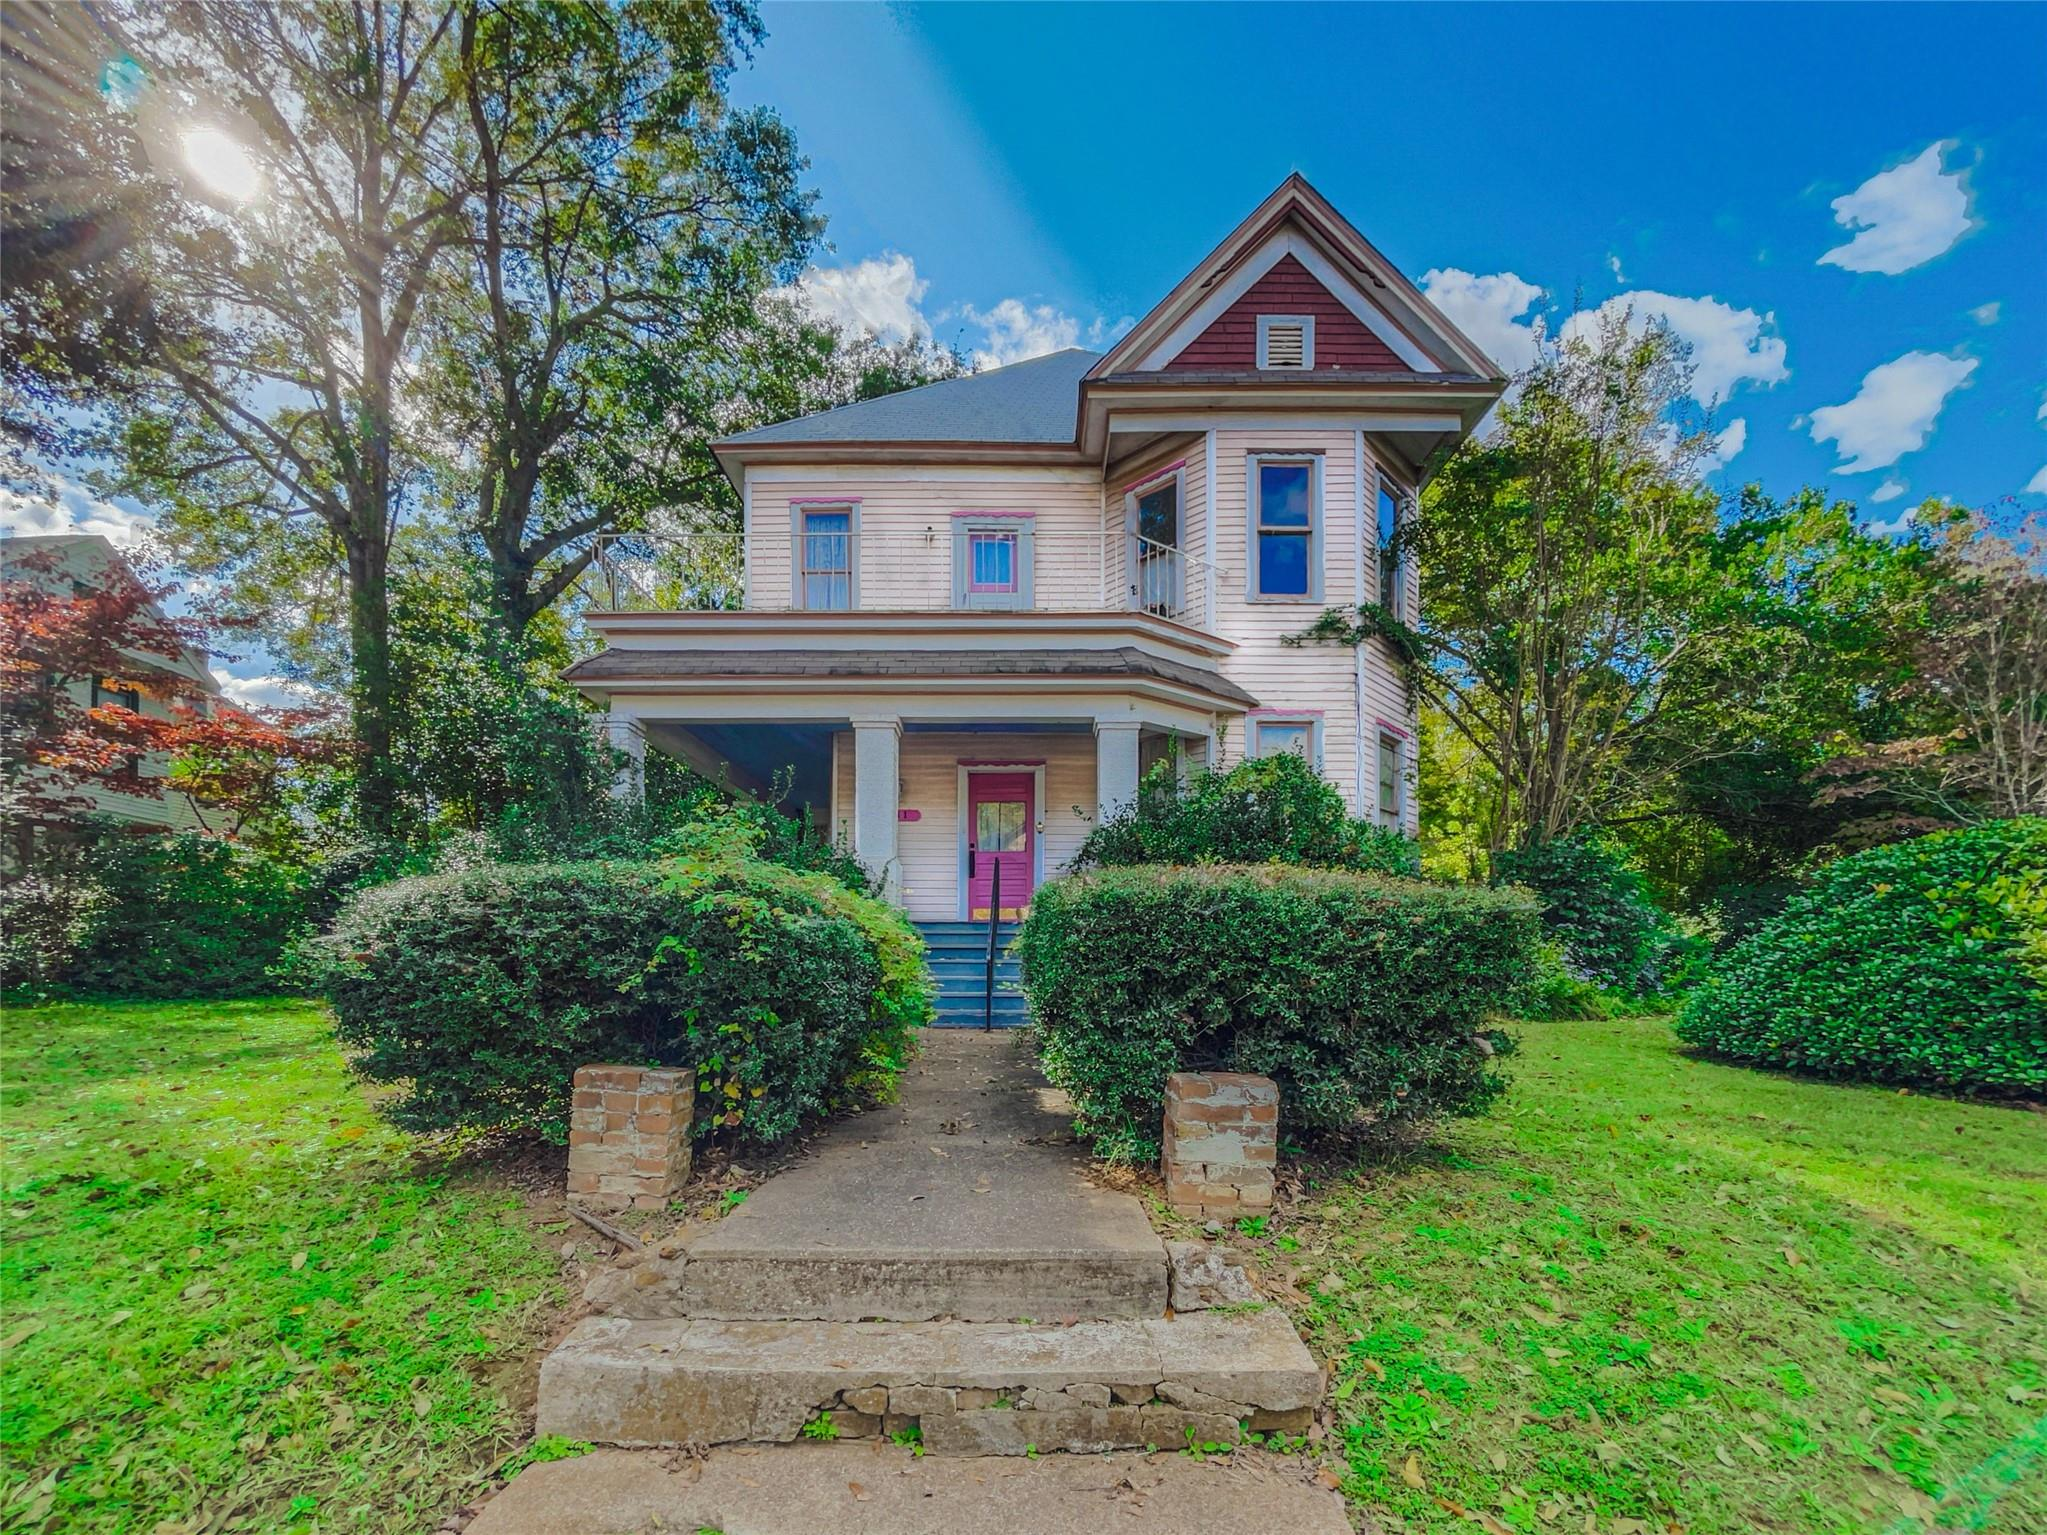 911 N Sycamore Street Property Photo - Palestine, TX real estate listing